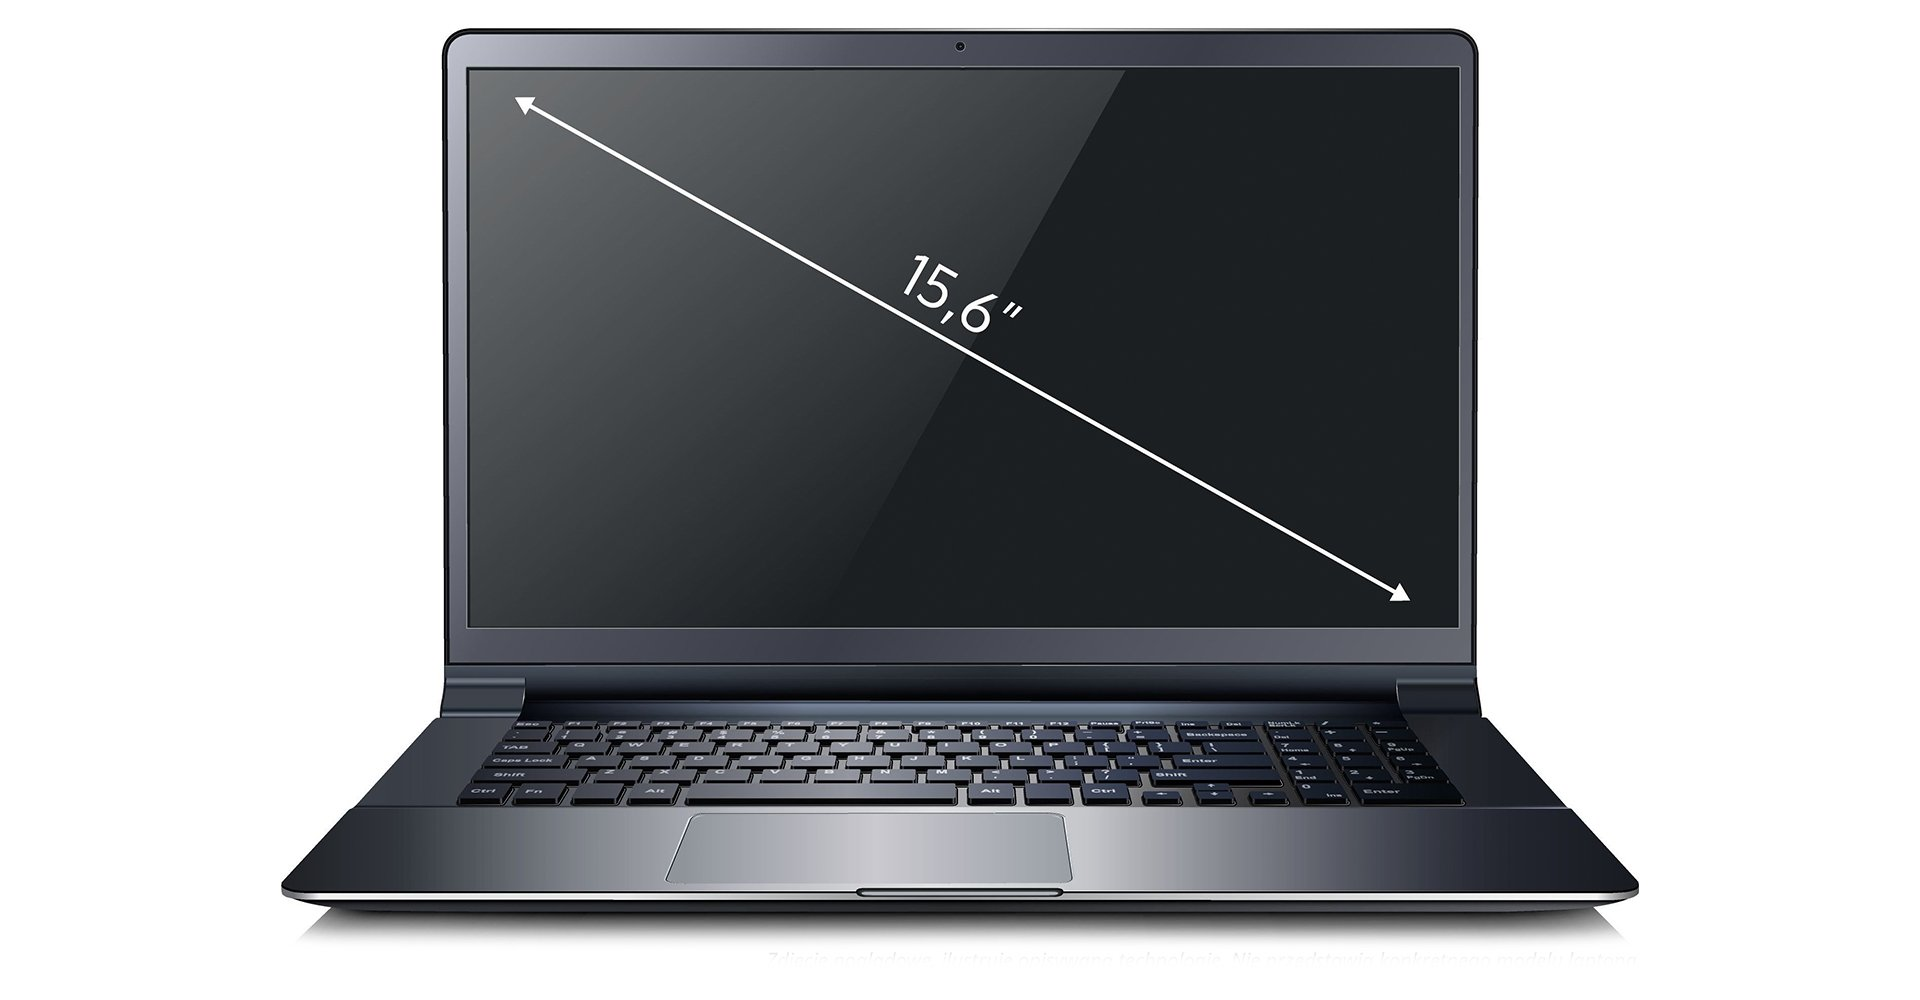 Acer Aspire 3 (NX.GY9EP.015) 8 GB RAM/ 128 GB SSD/ Windows 10 Home                             15.6-tollise diagonaaliga